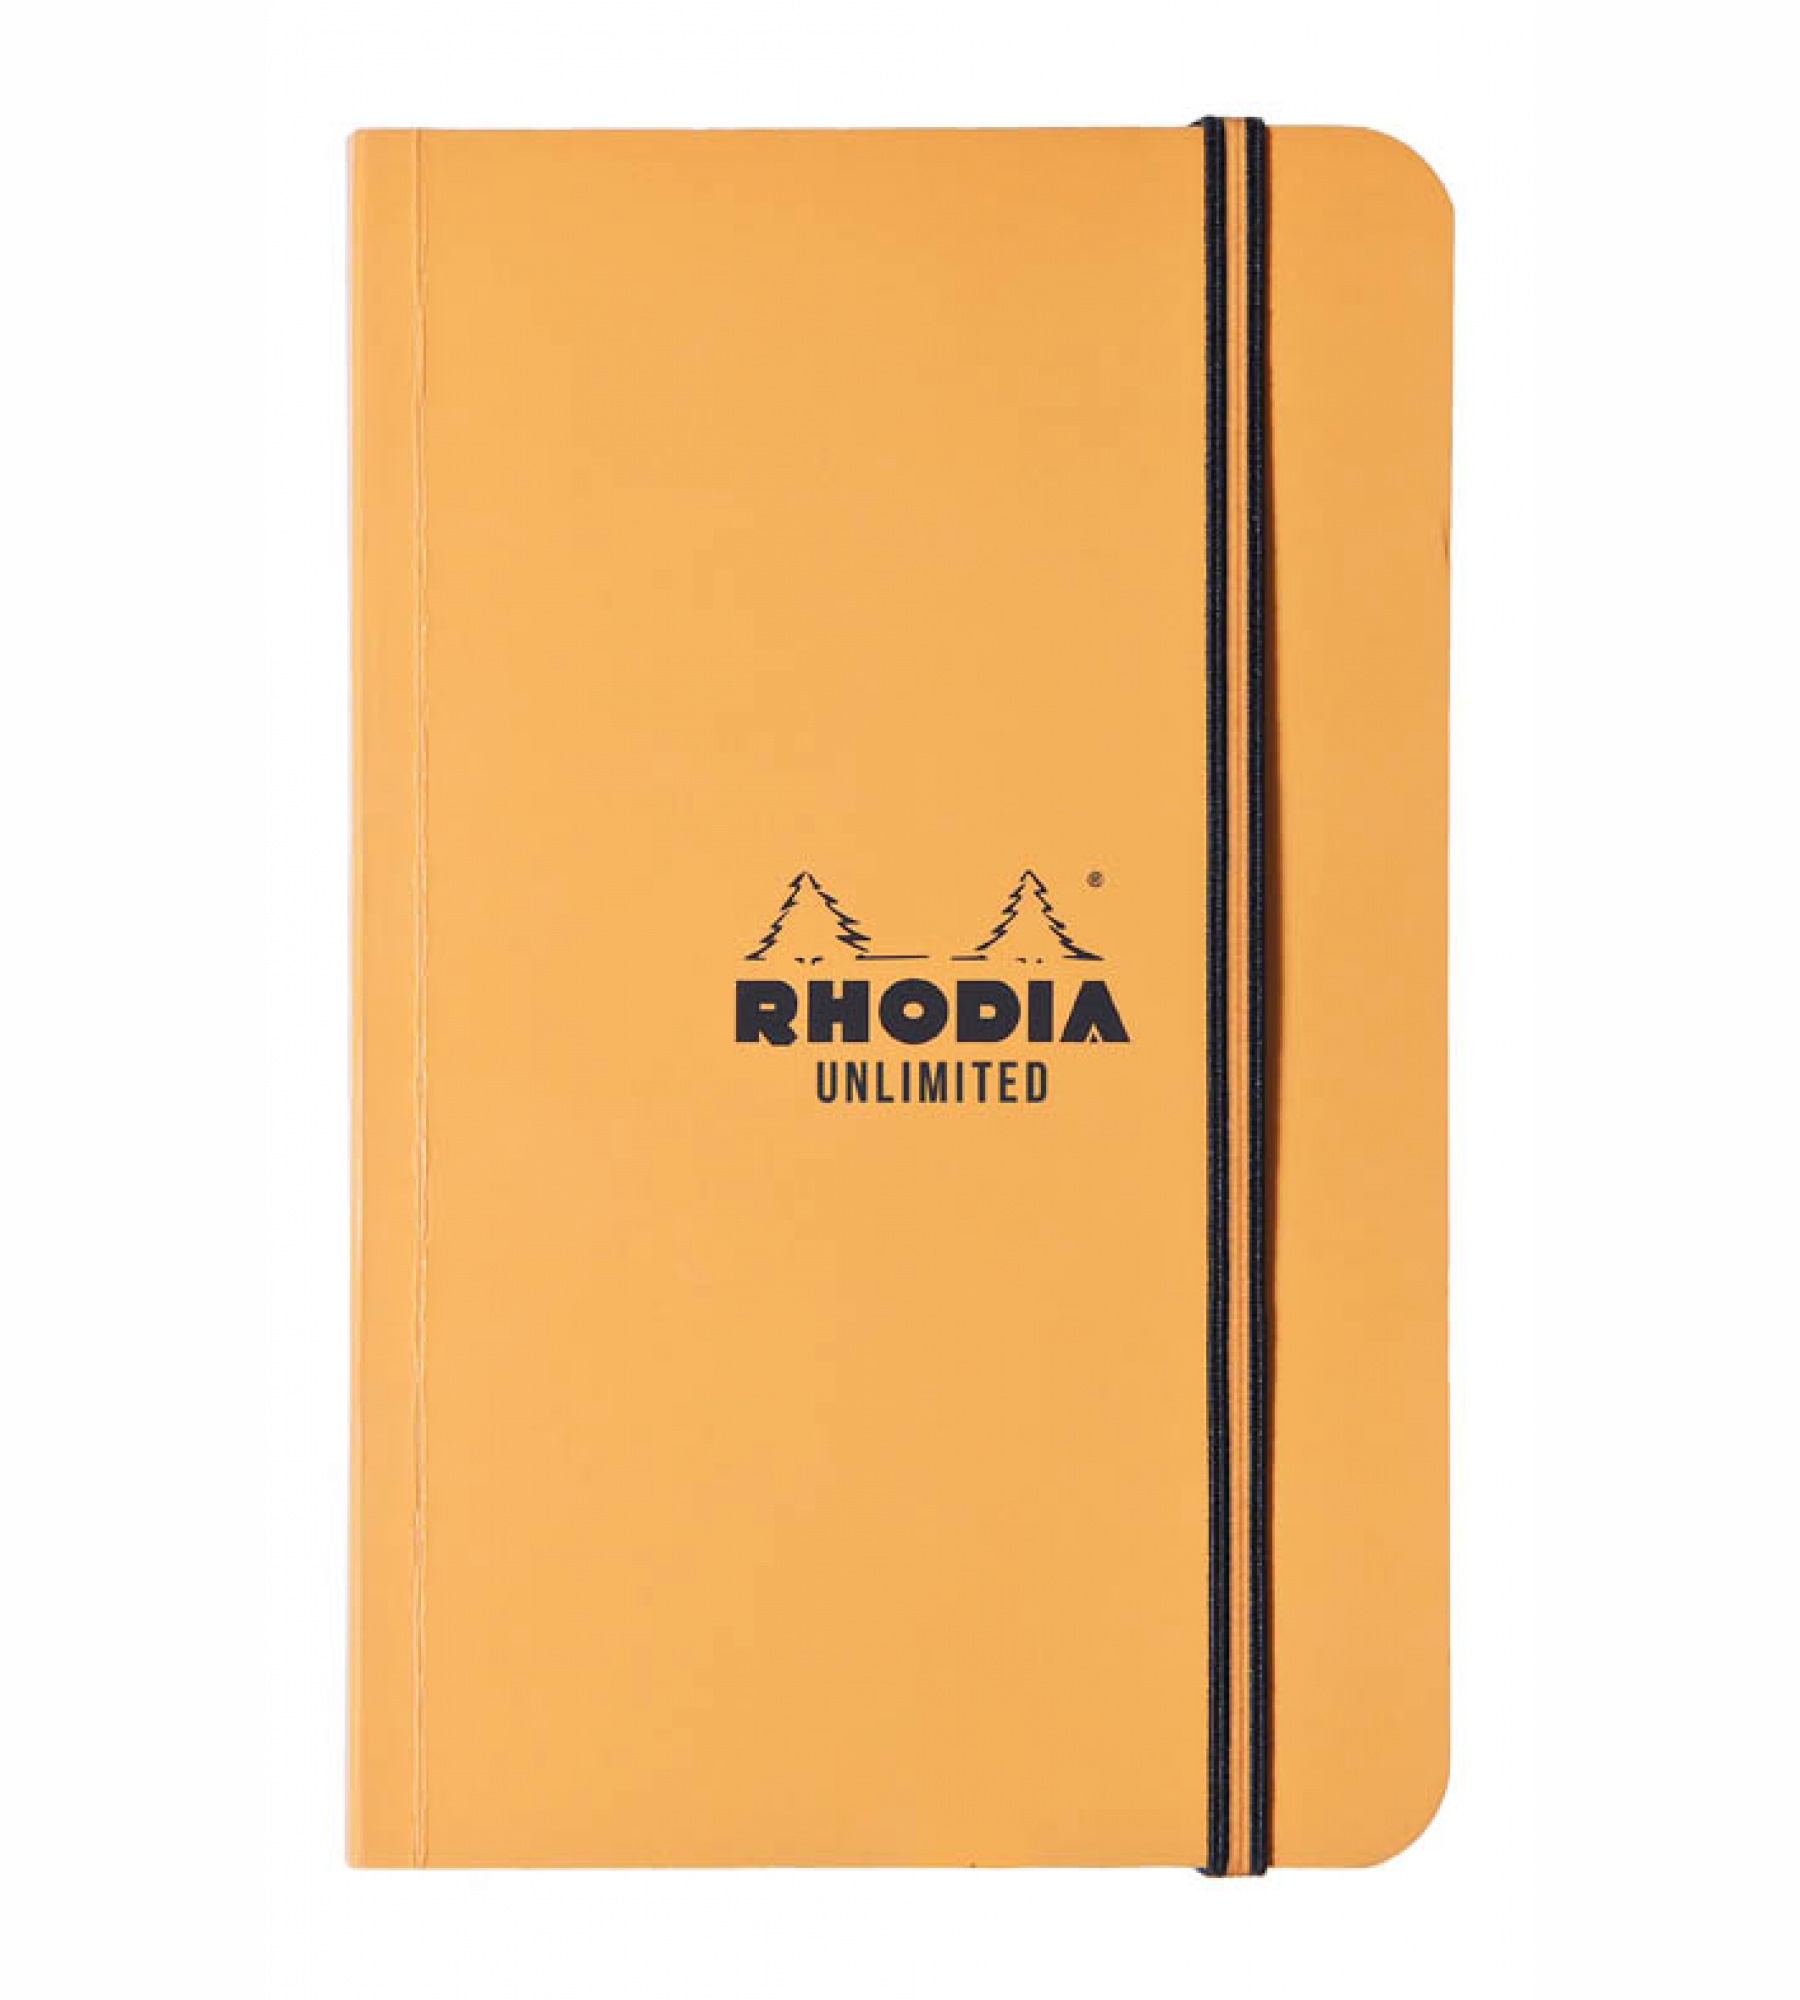 Rhodia Orange Unlimited Ntbk 3.5X5.5 Lined